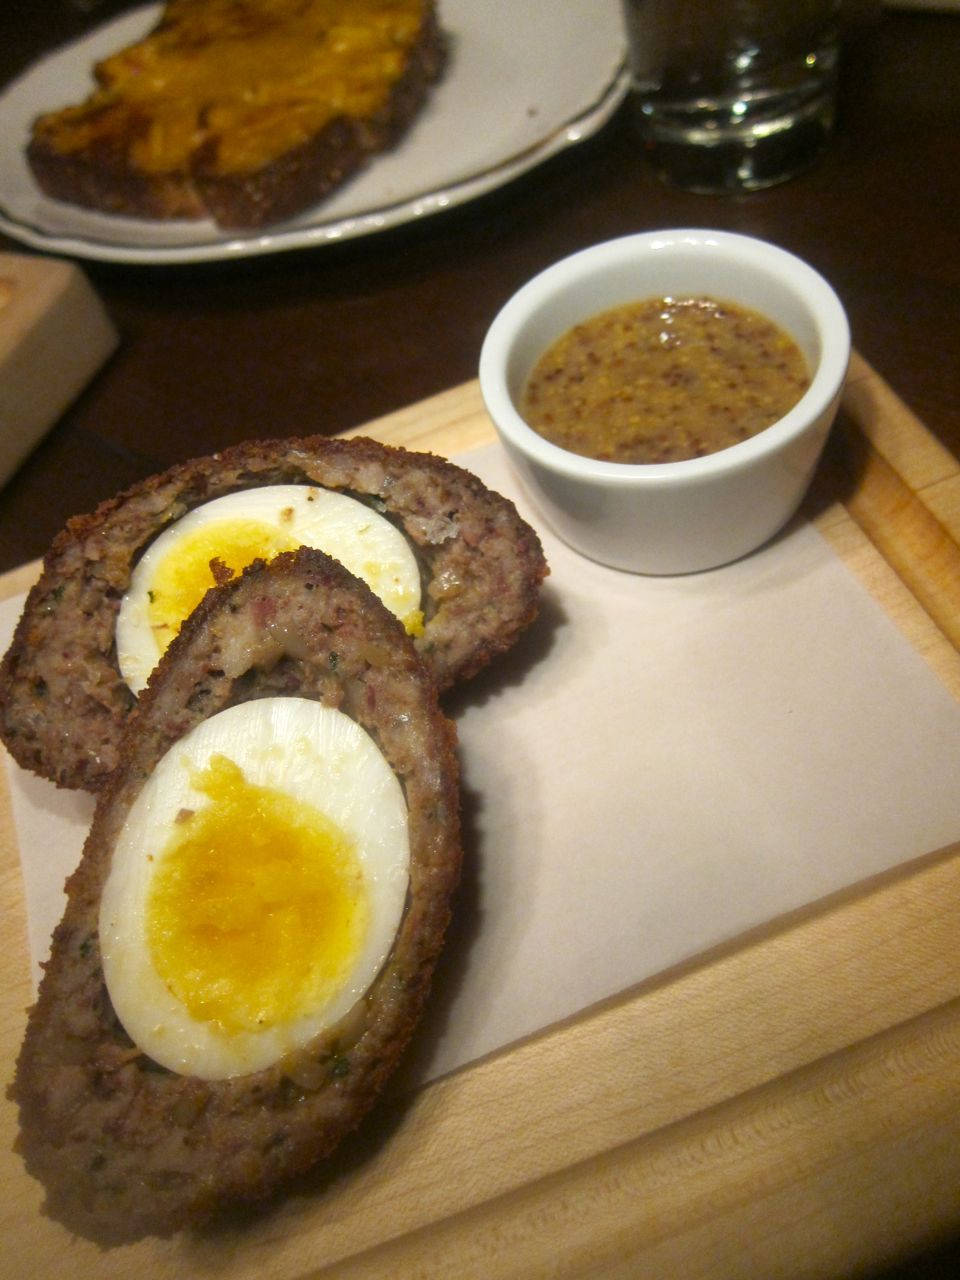 I'm not sure I'm really a fan of the Scotch egg, although this one is exceptional.